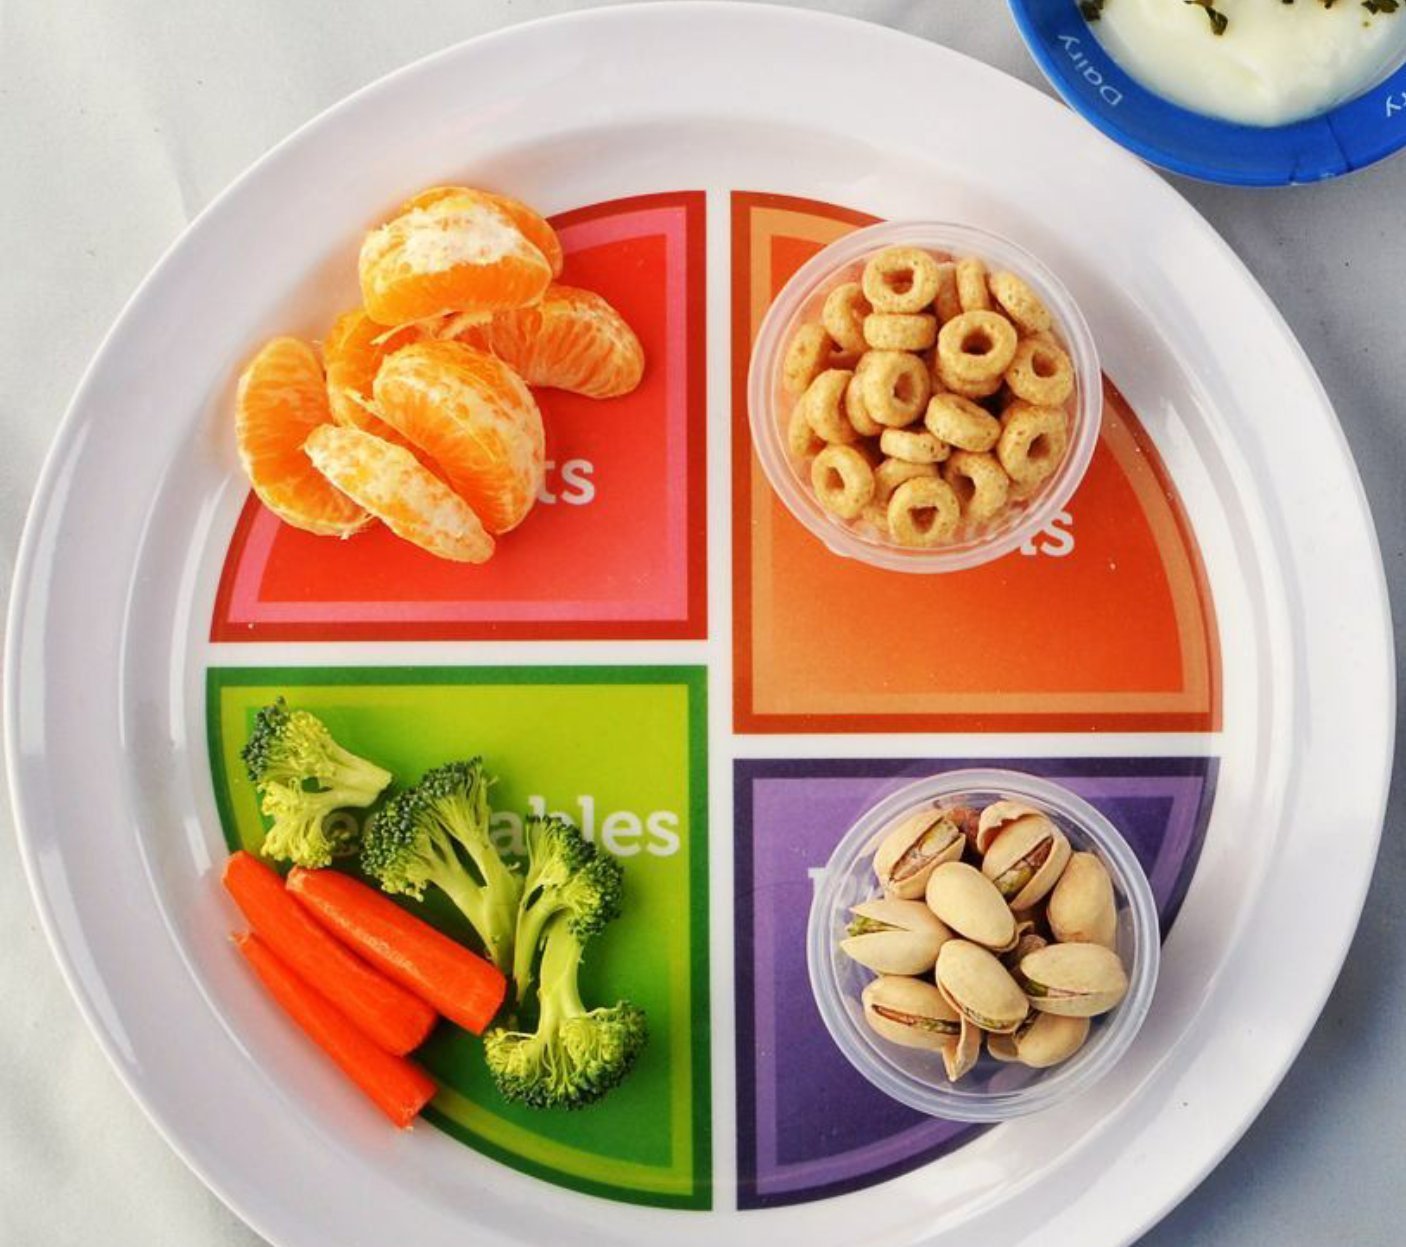 Amazon choose myplate 10 inch plate for adults teens amazon choose myplate 10 inch plate for adults teens spanish healthy food and portion control dinner plates dinner plates pooptronica